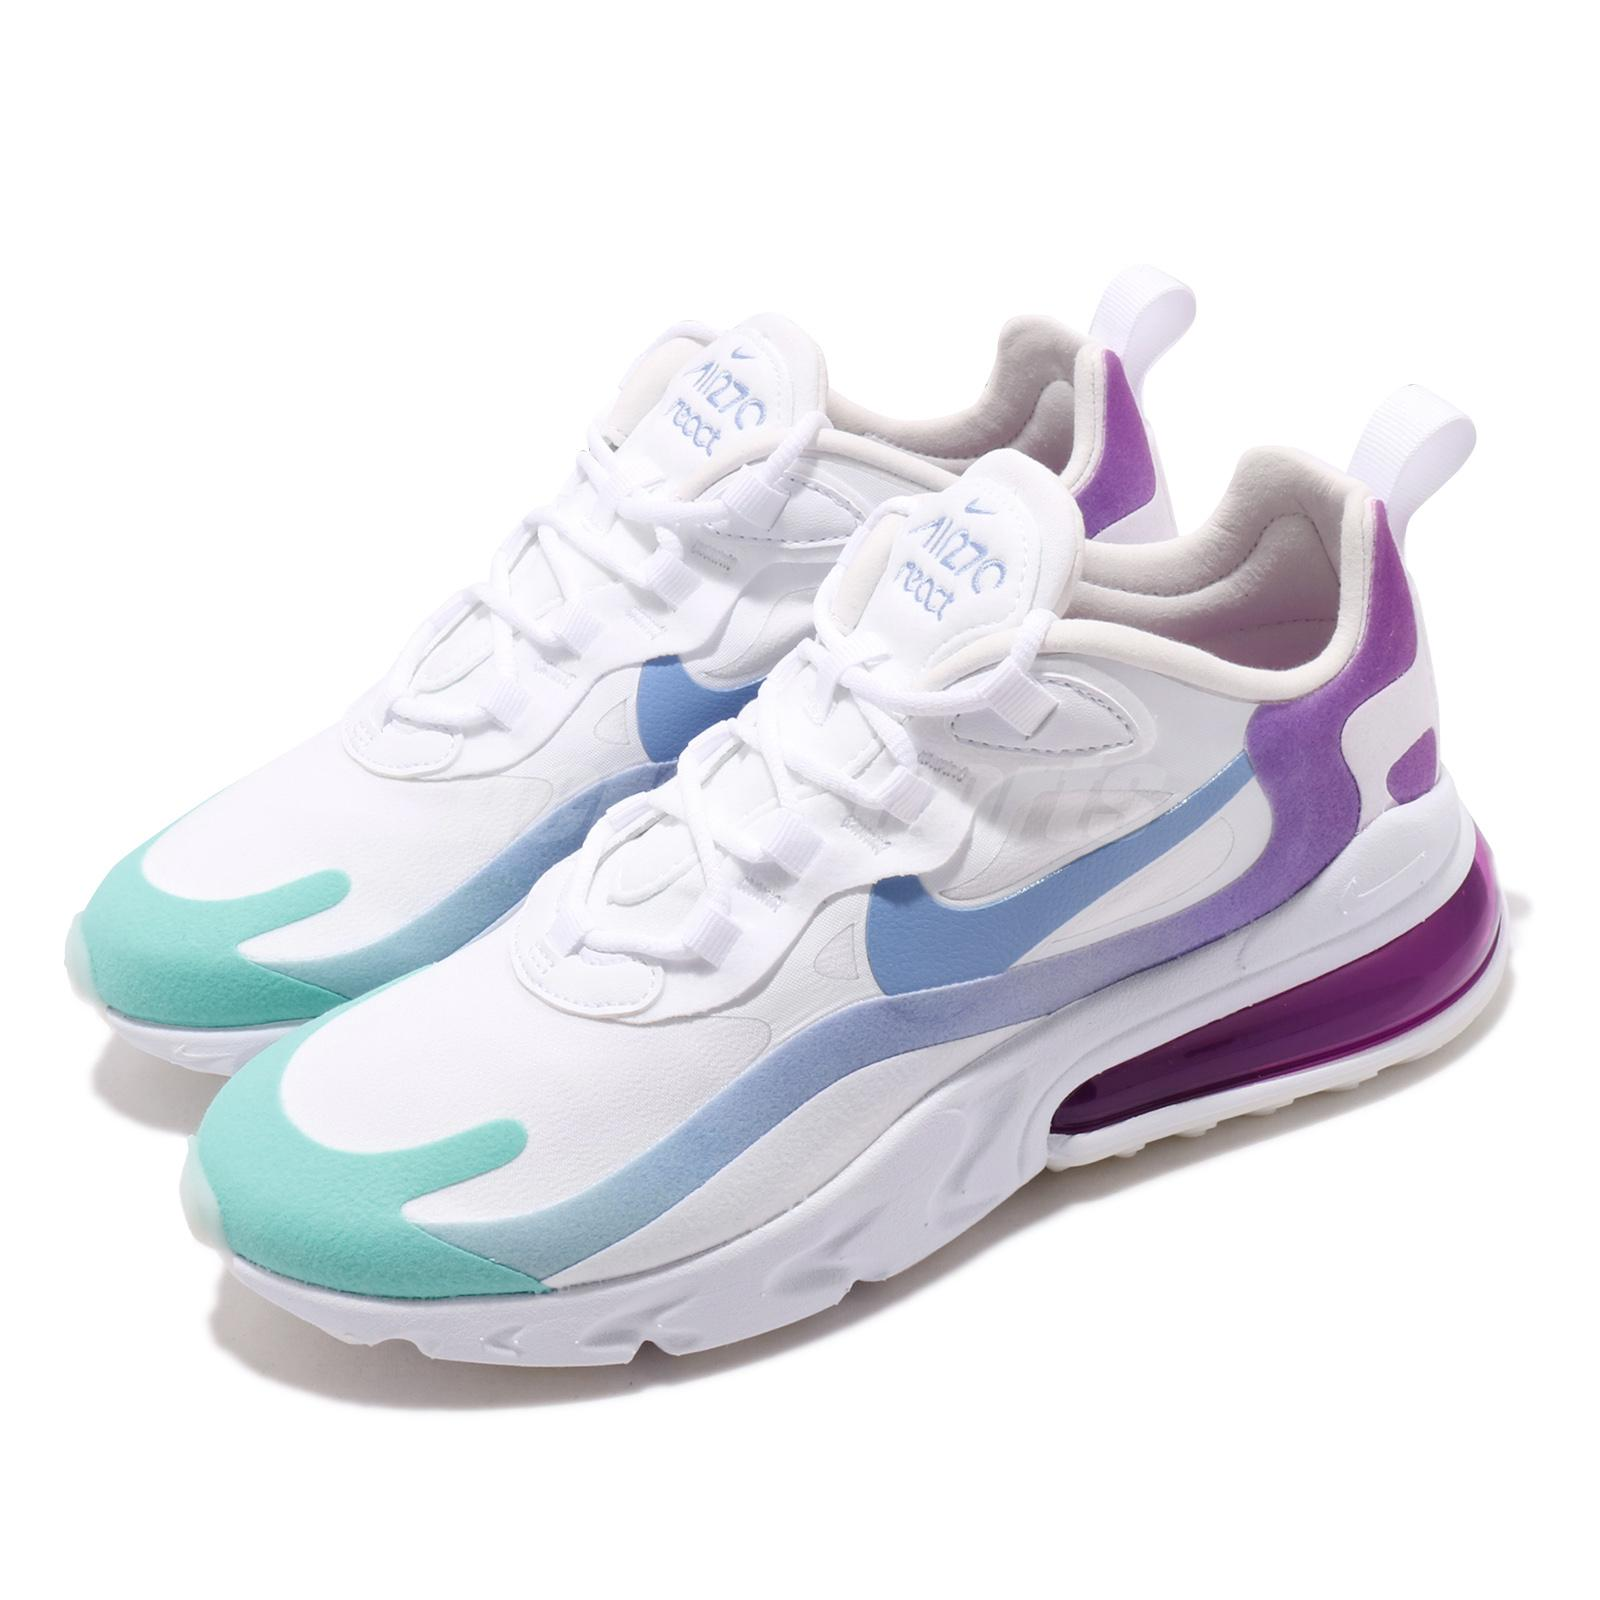 Nike Wmns Air Max 270 React Aurora Green White Blue Purple Women